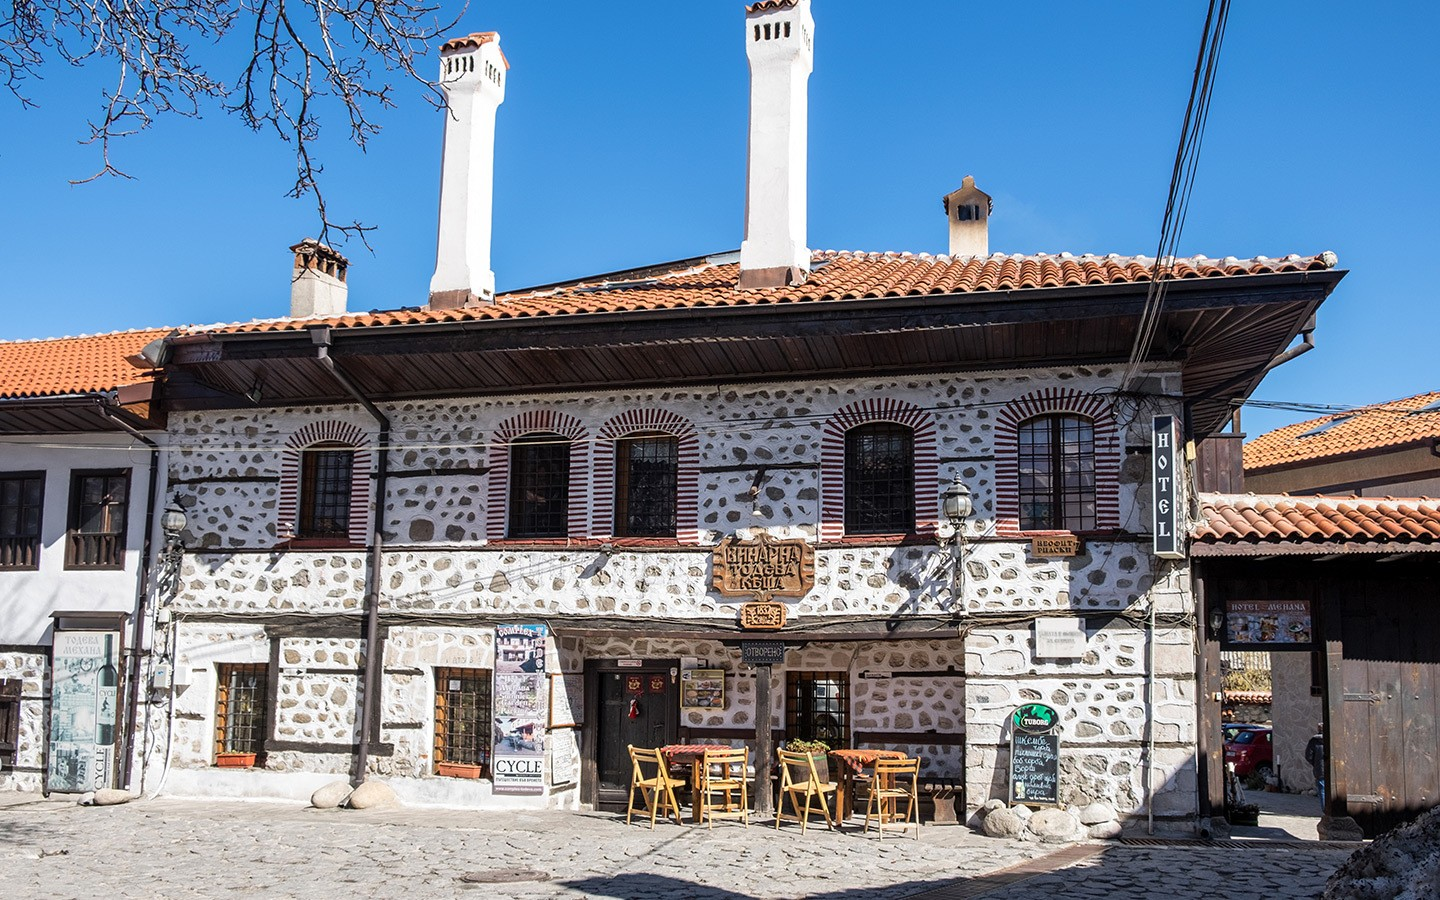 Building in Bansko's UNESCO-listed old town